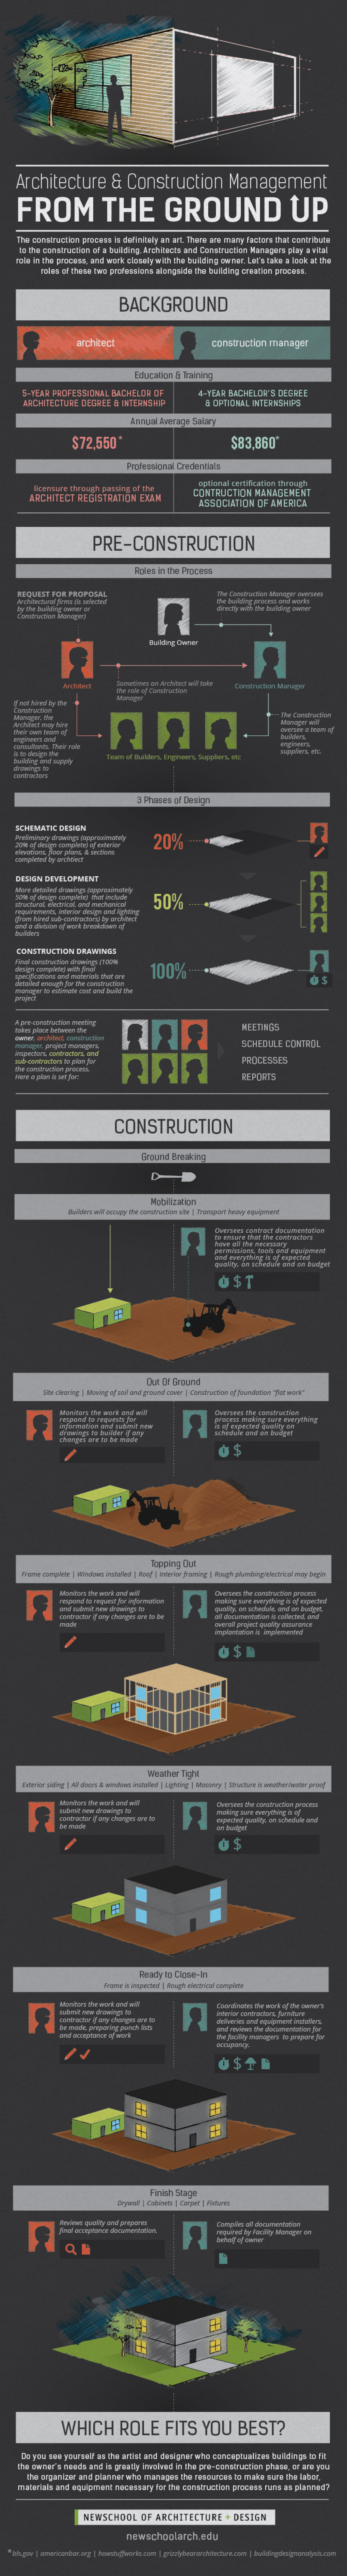 Architecture and Construction Management from the Ground Up  Infographic